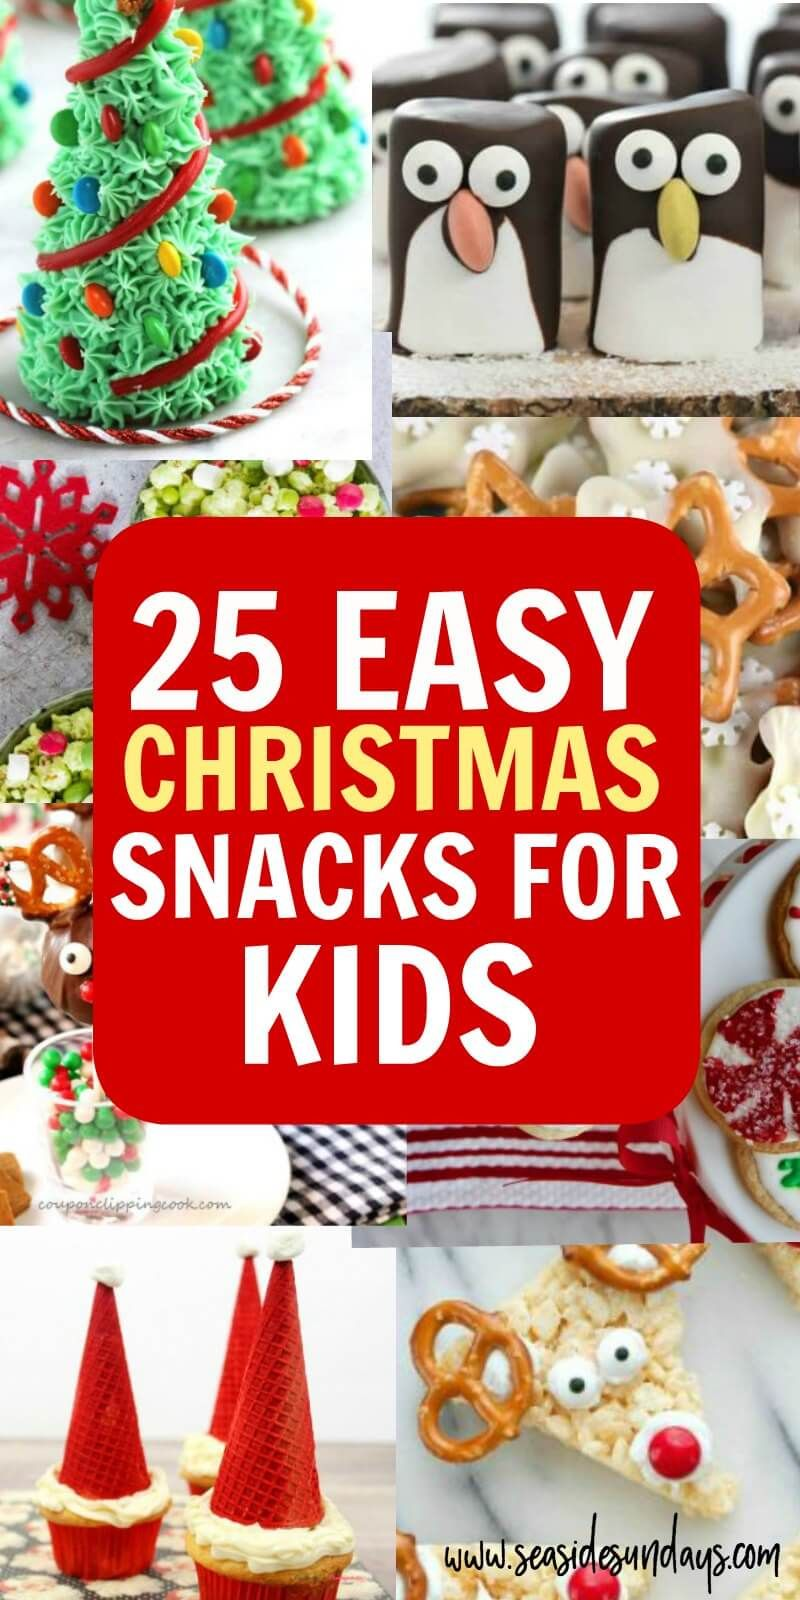 25 Cute Christmas Snacks For Kids Christmas Party Treats Christmas Party Snacks School Christmas Party